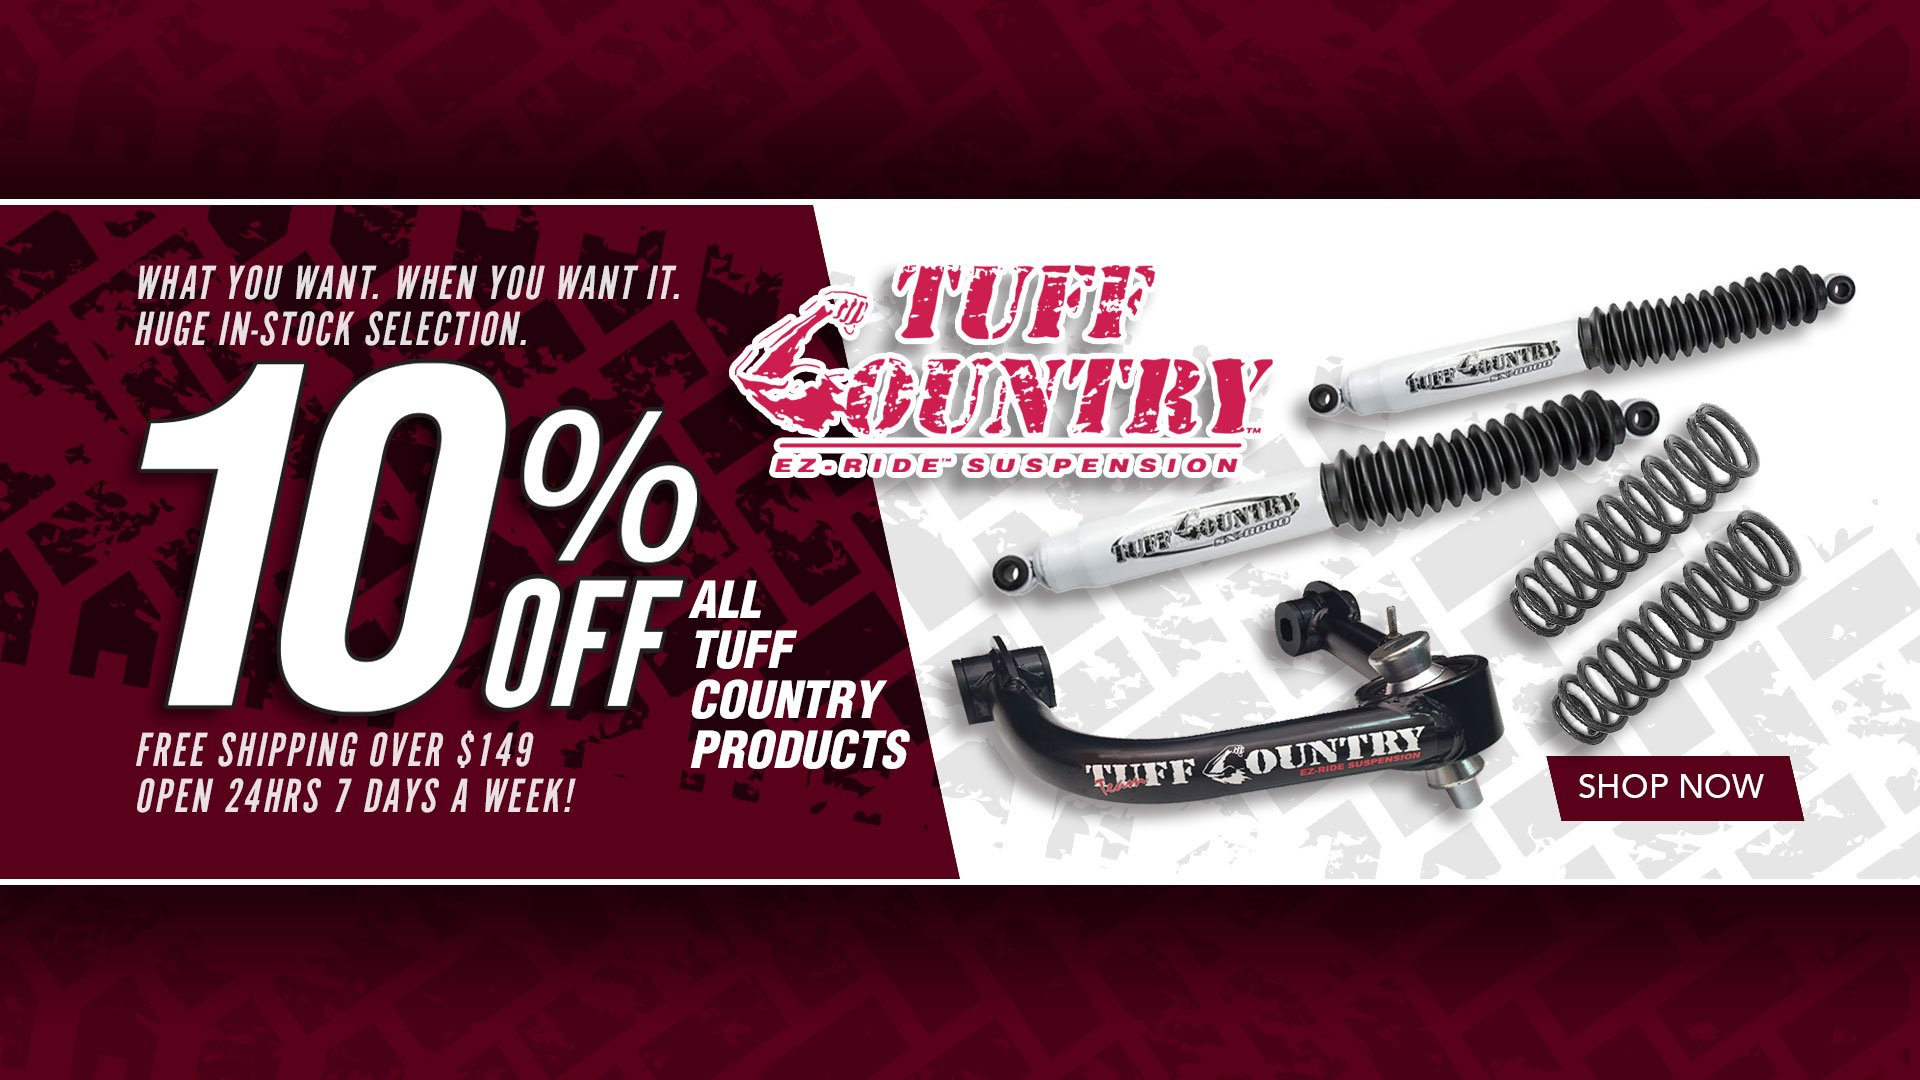 Save 10% on ALL Tuff Country Products